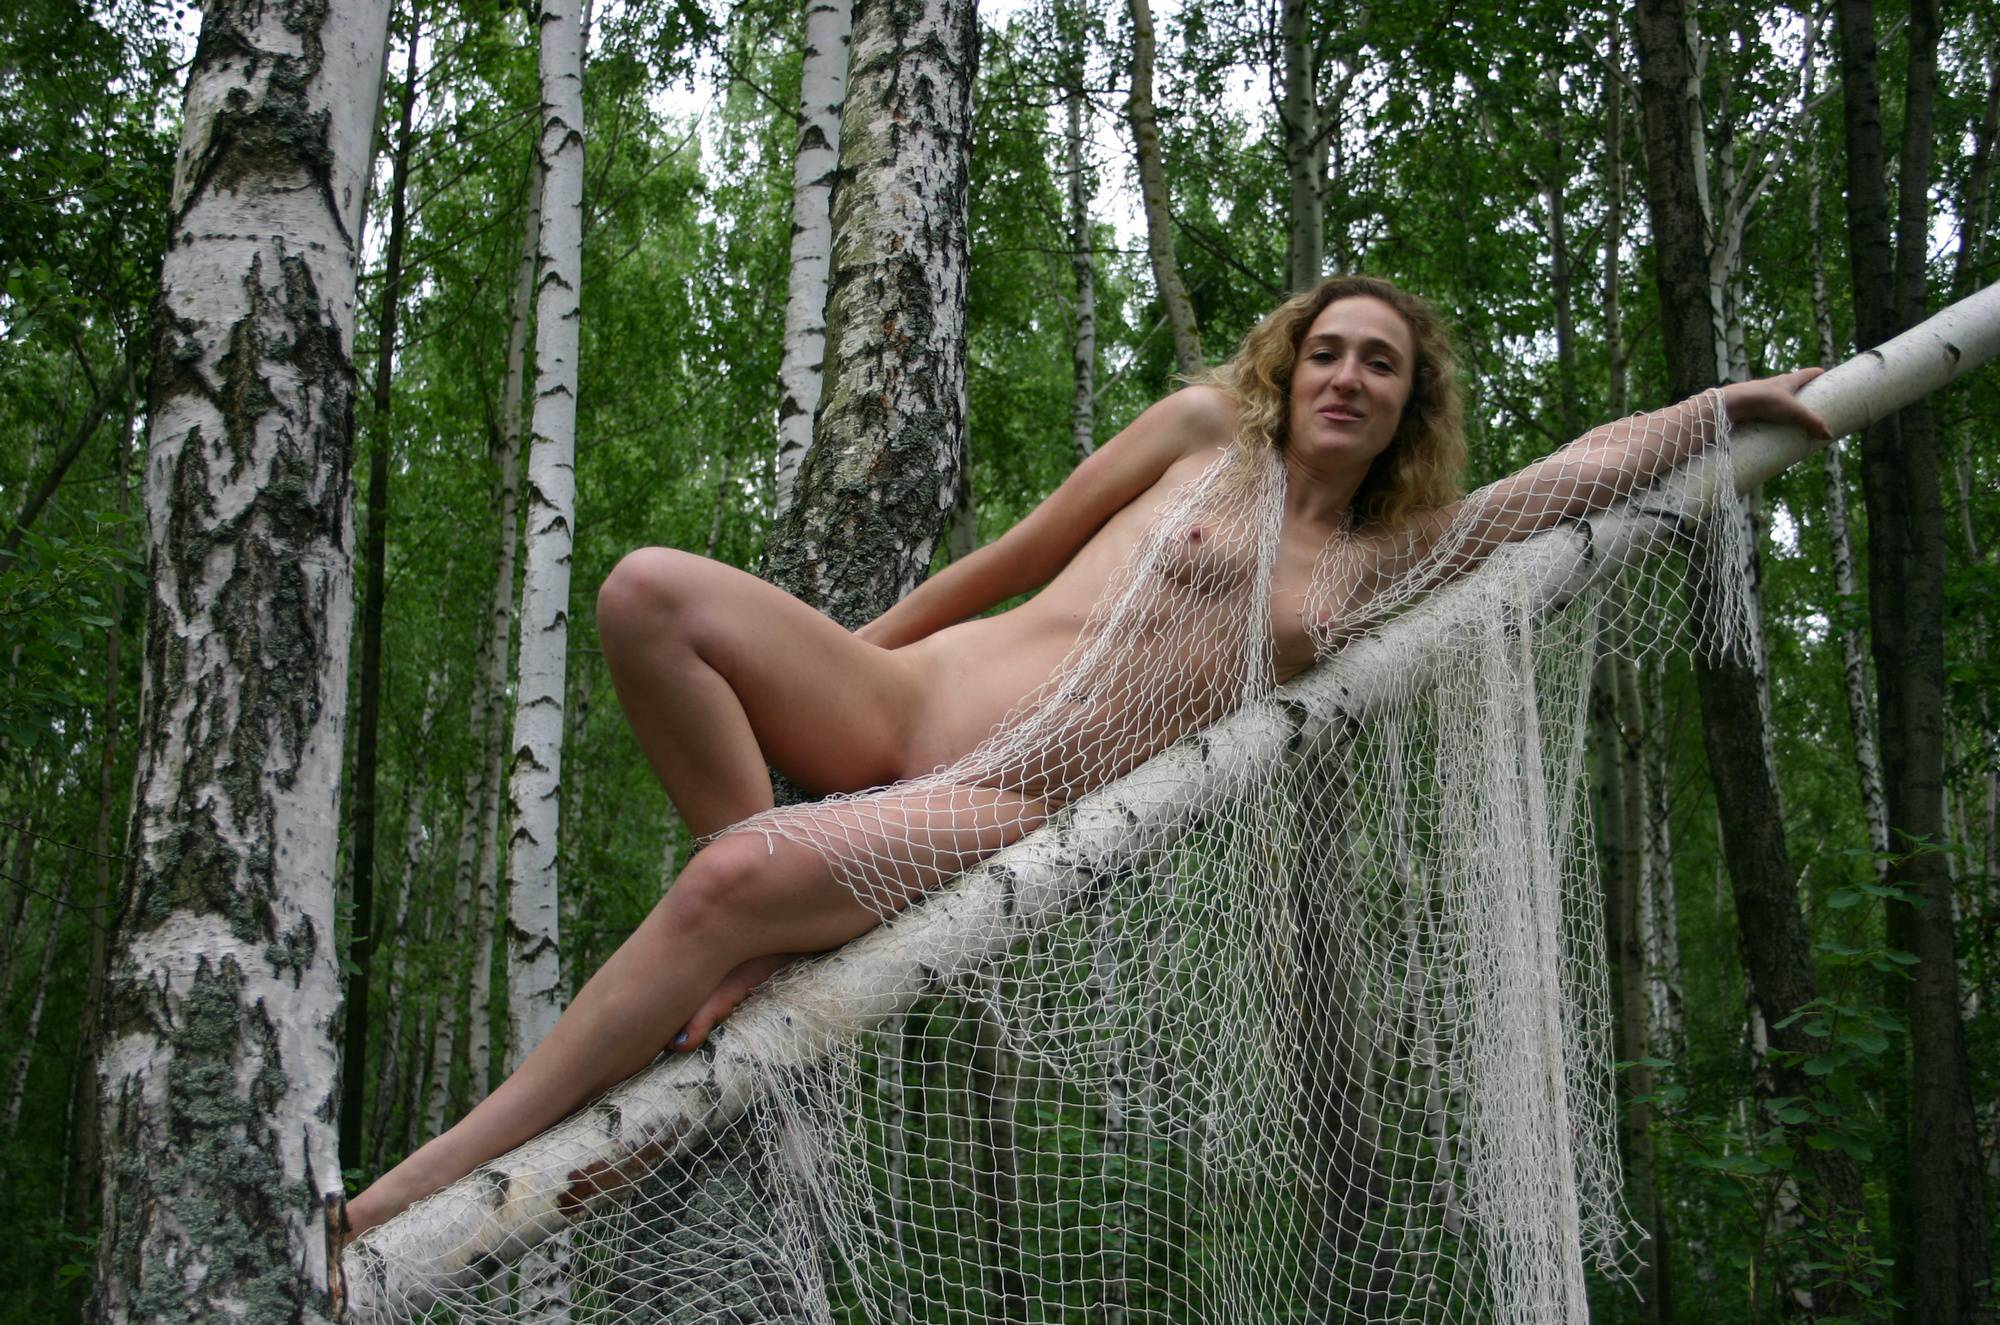 Nudist Photos Dare to Be Bare Nets - 2